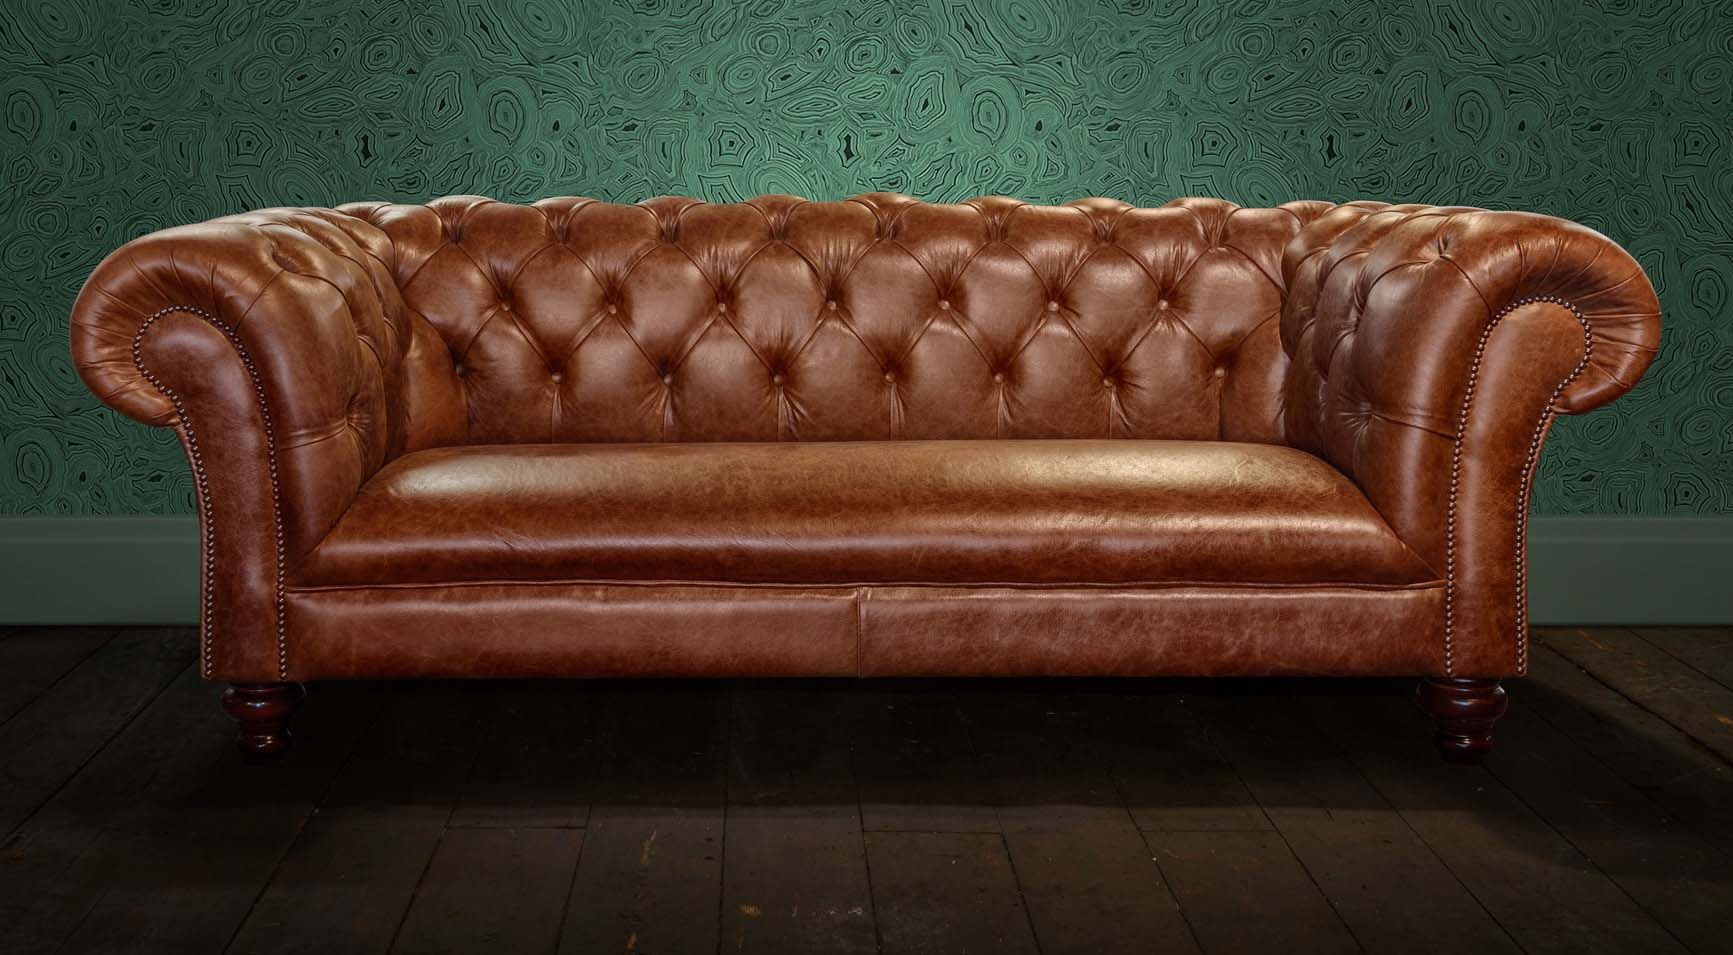 Windsor Chesterfield Sofa Handmade In The Uk Using High Grade Leather And Available With Free Delivery From Chesterfields Of England